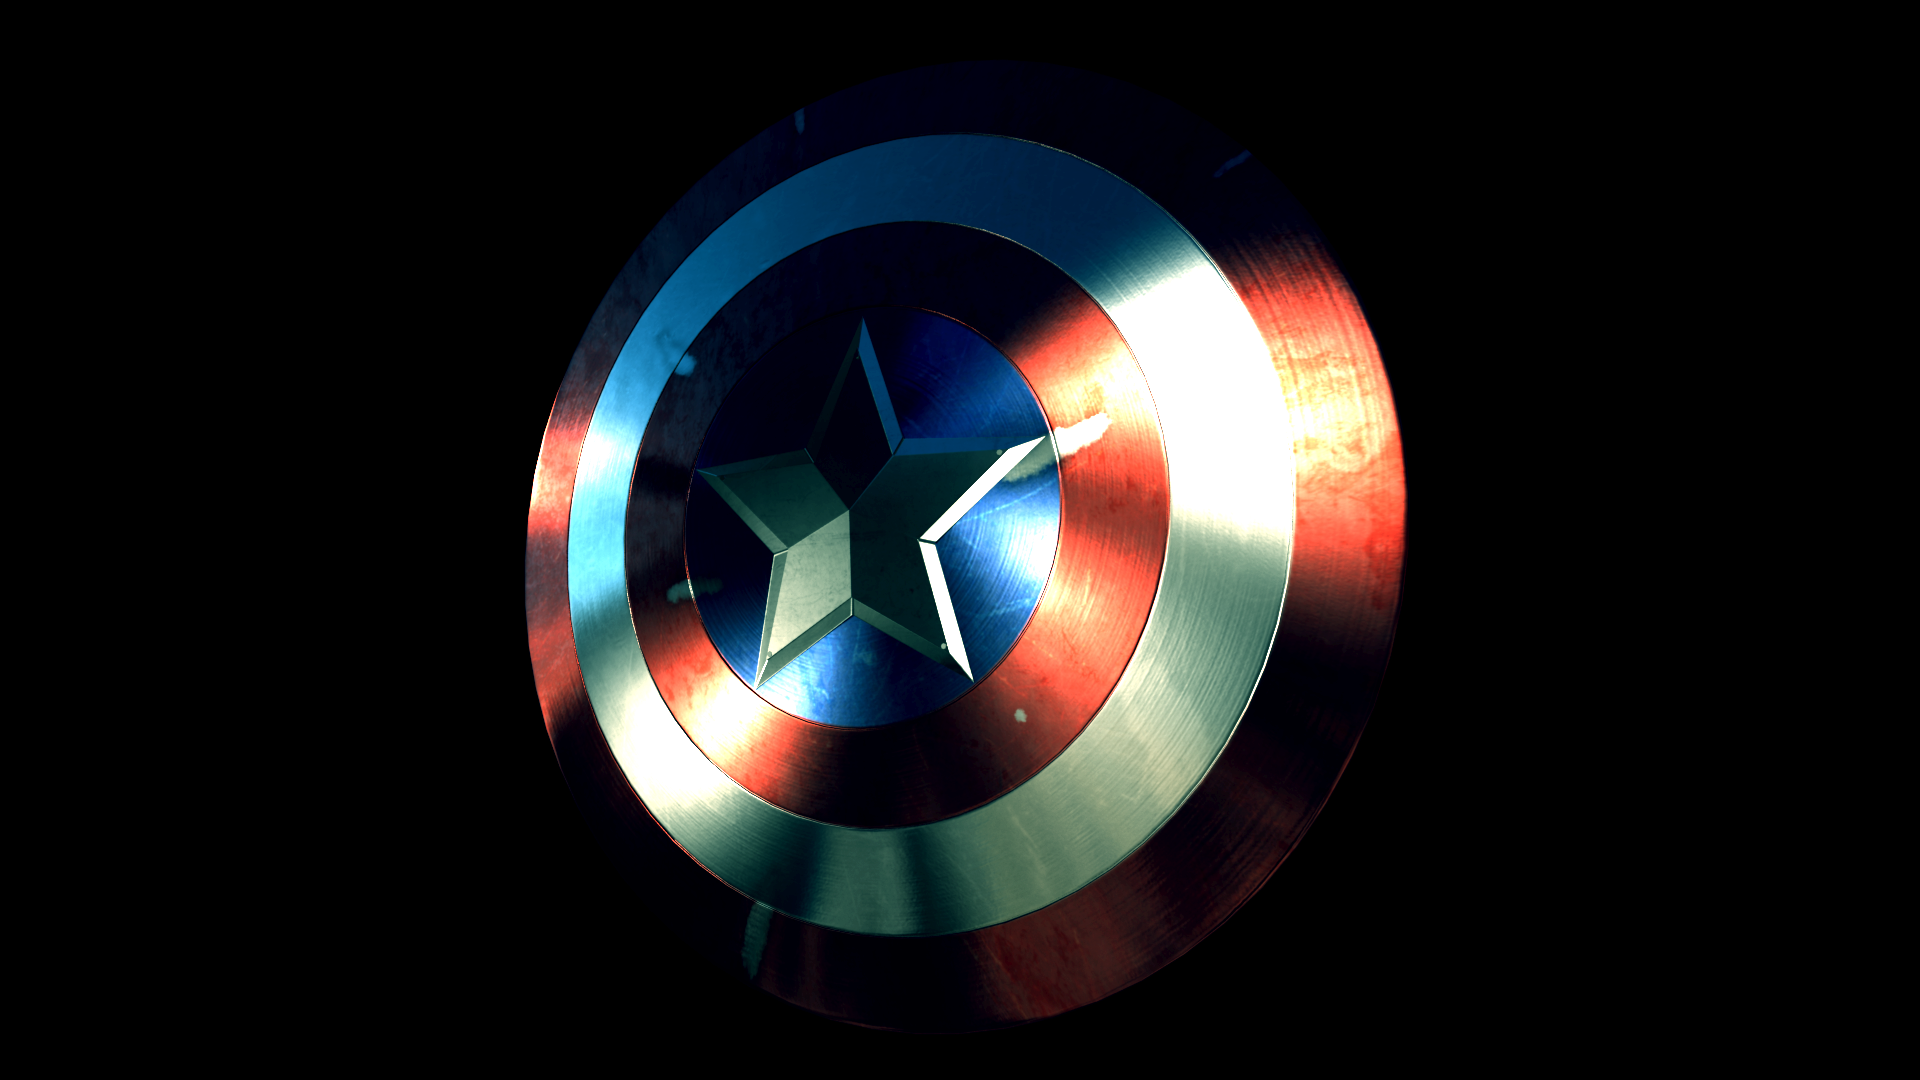 Captain America Shield Drawing: Captain America's Shield By JumpN7 On DeviantArt